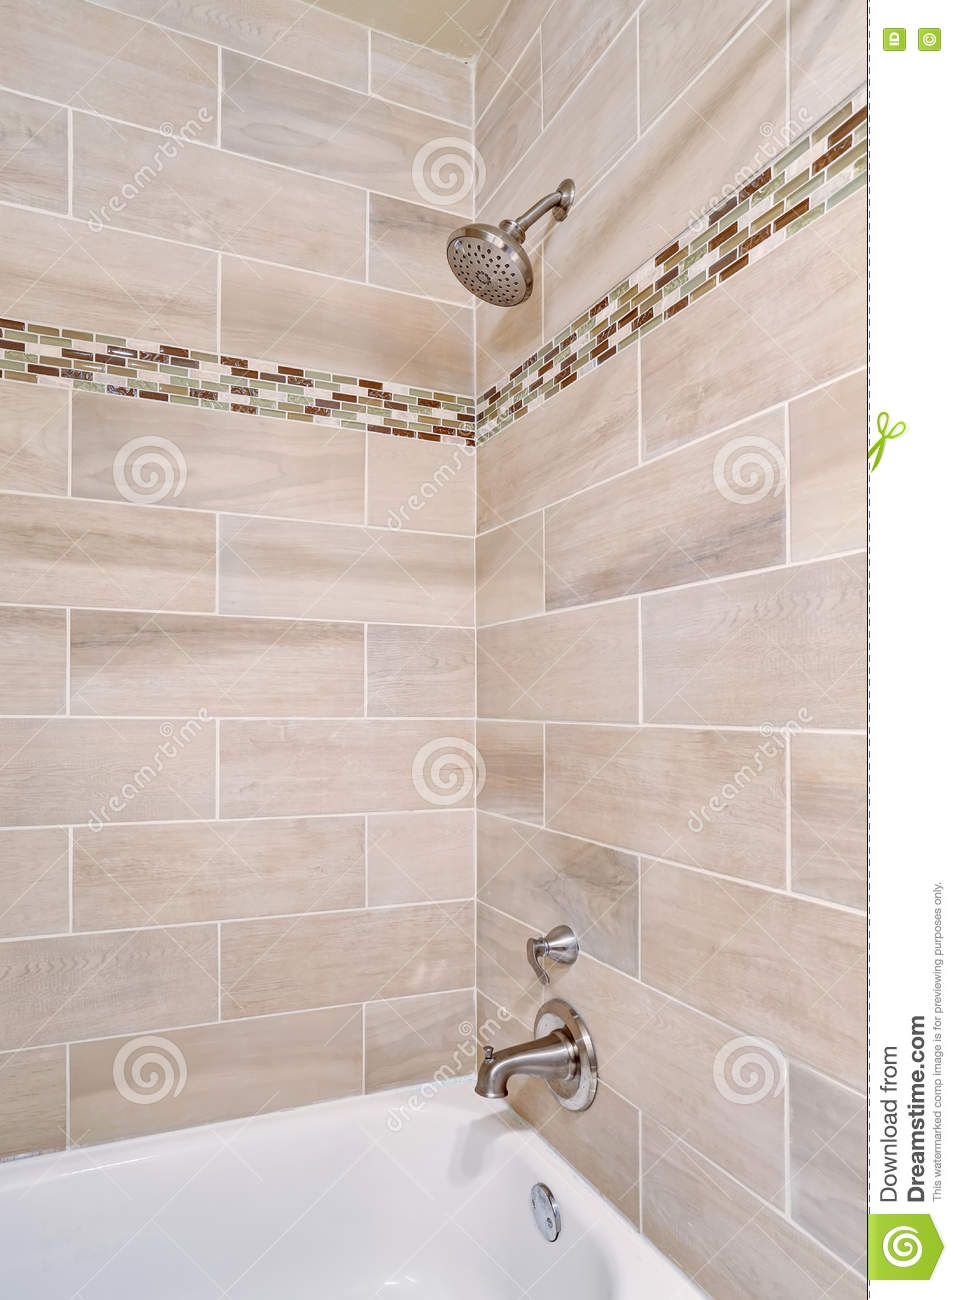 bathroom interior design. view of open shower with tile wall trim